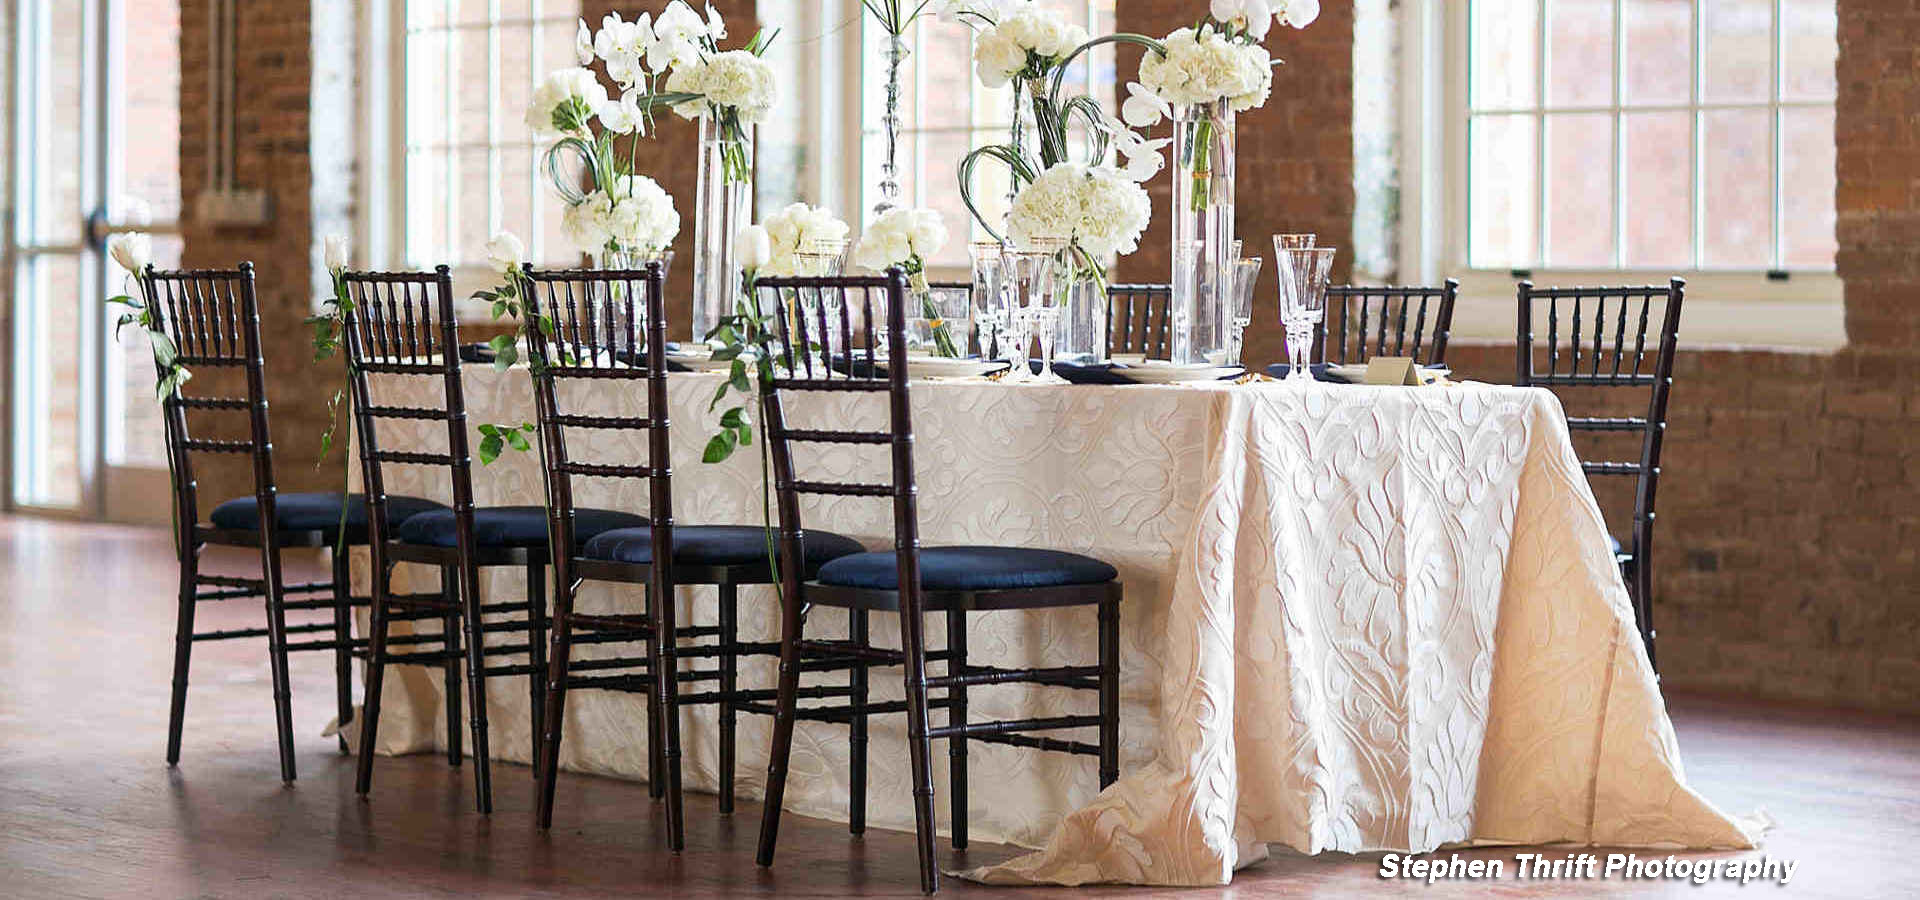 Event Rentals in the Washington DC Metro area